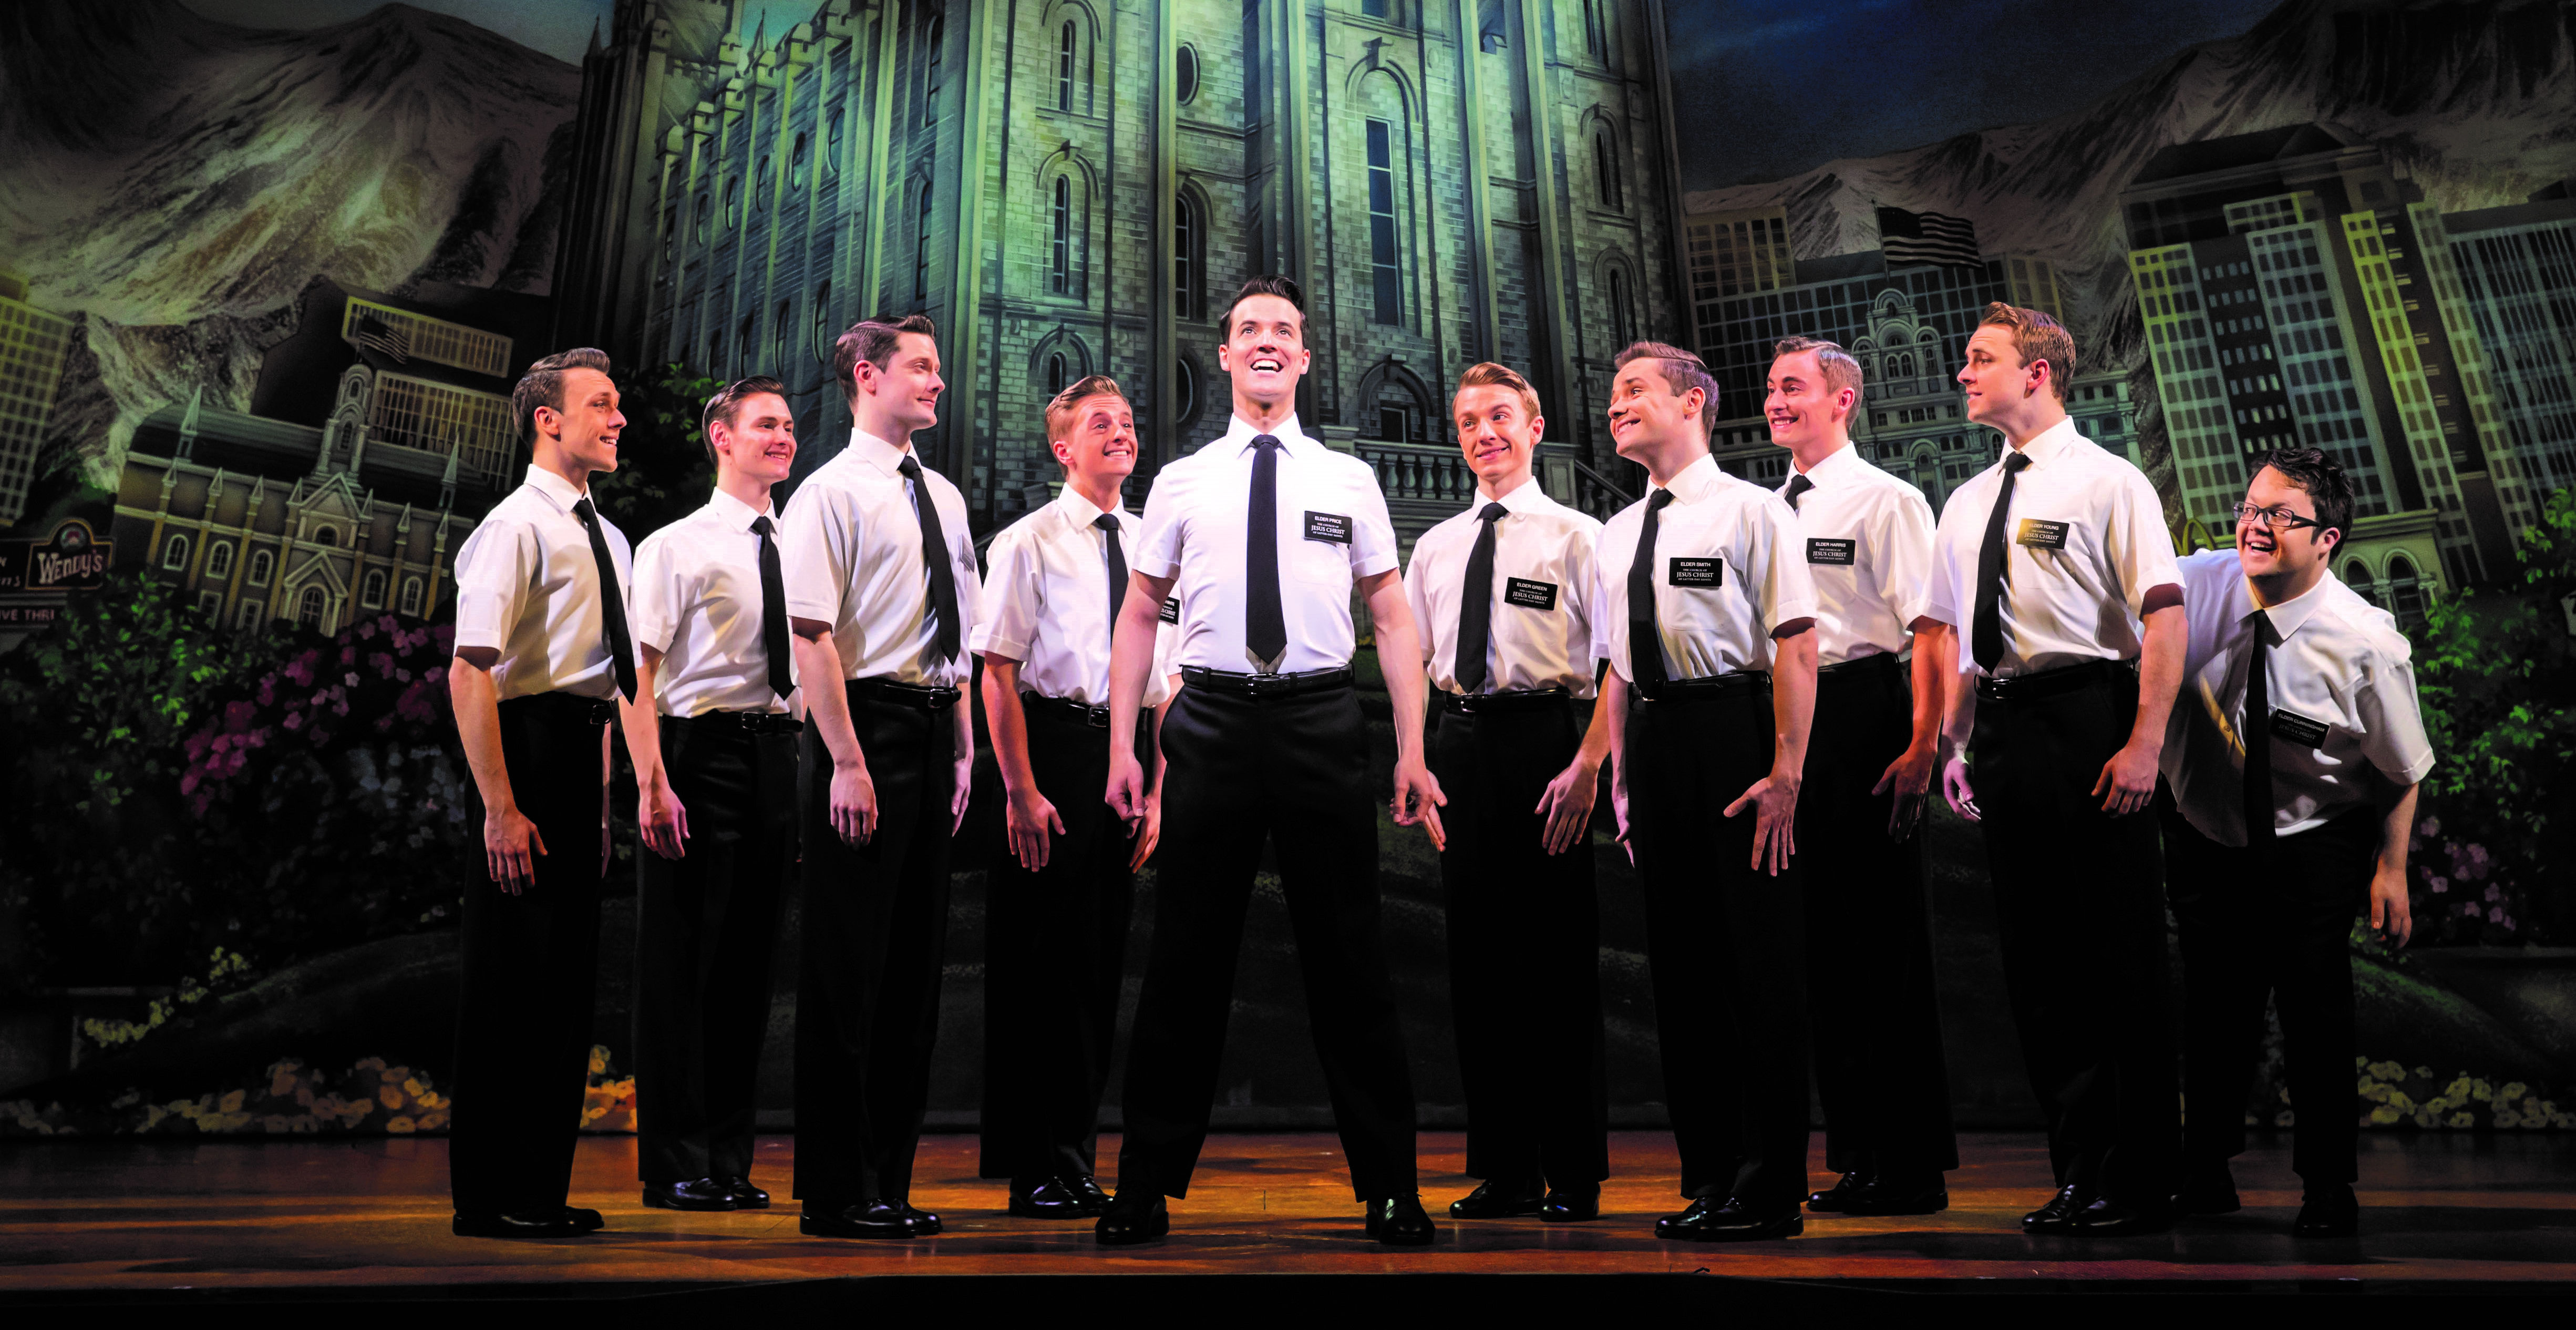 Book of Mormon production shot